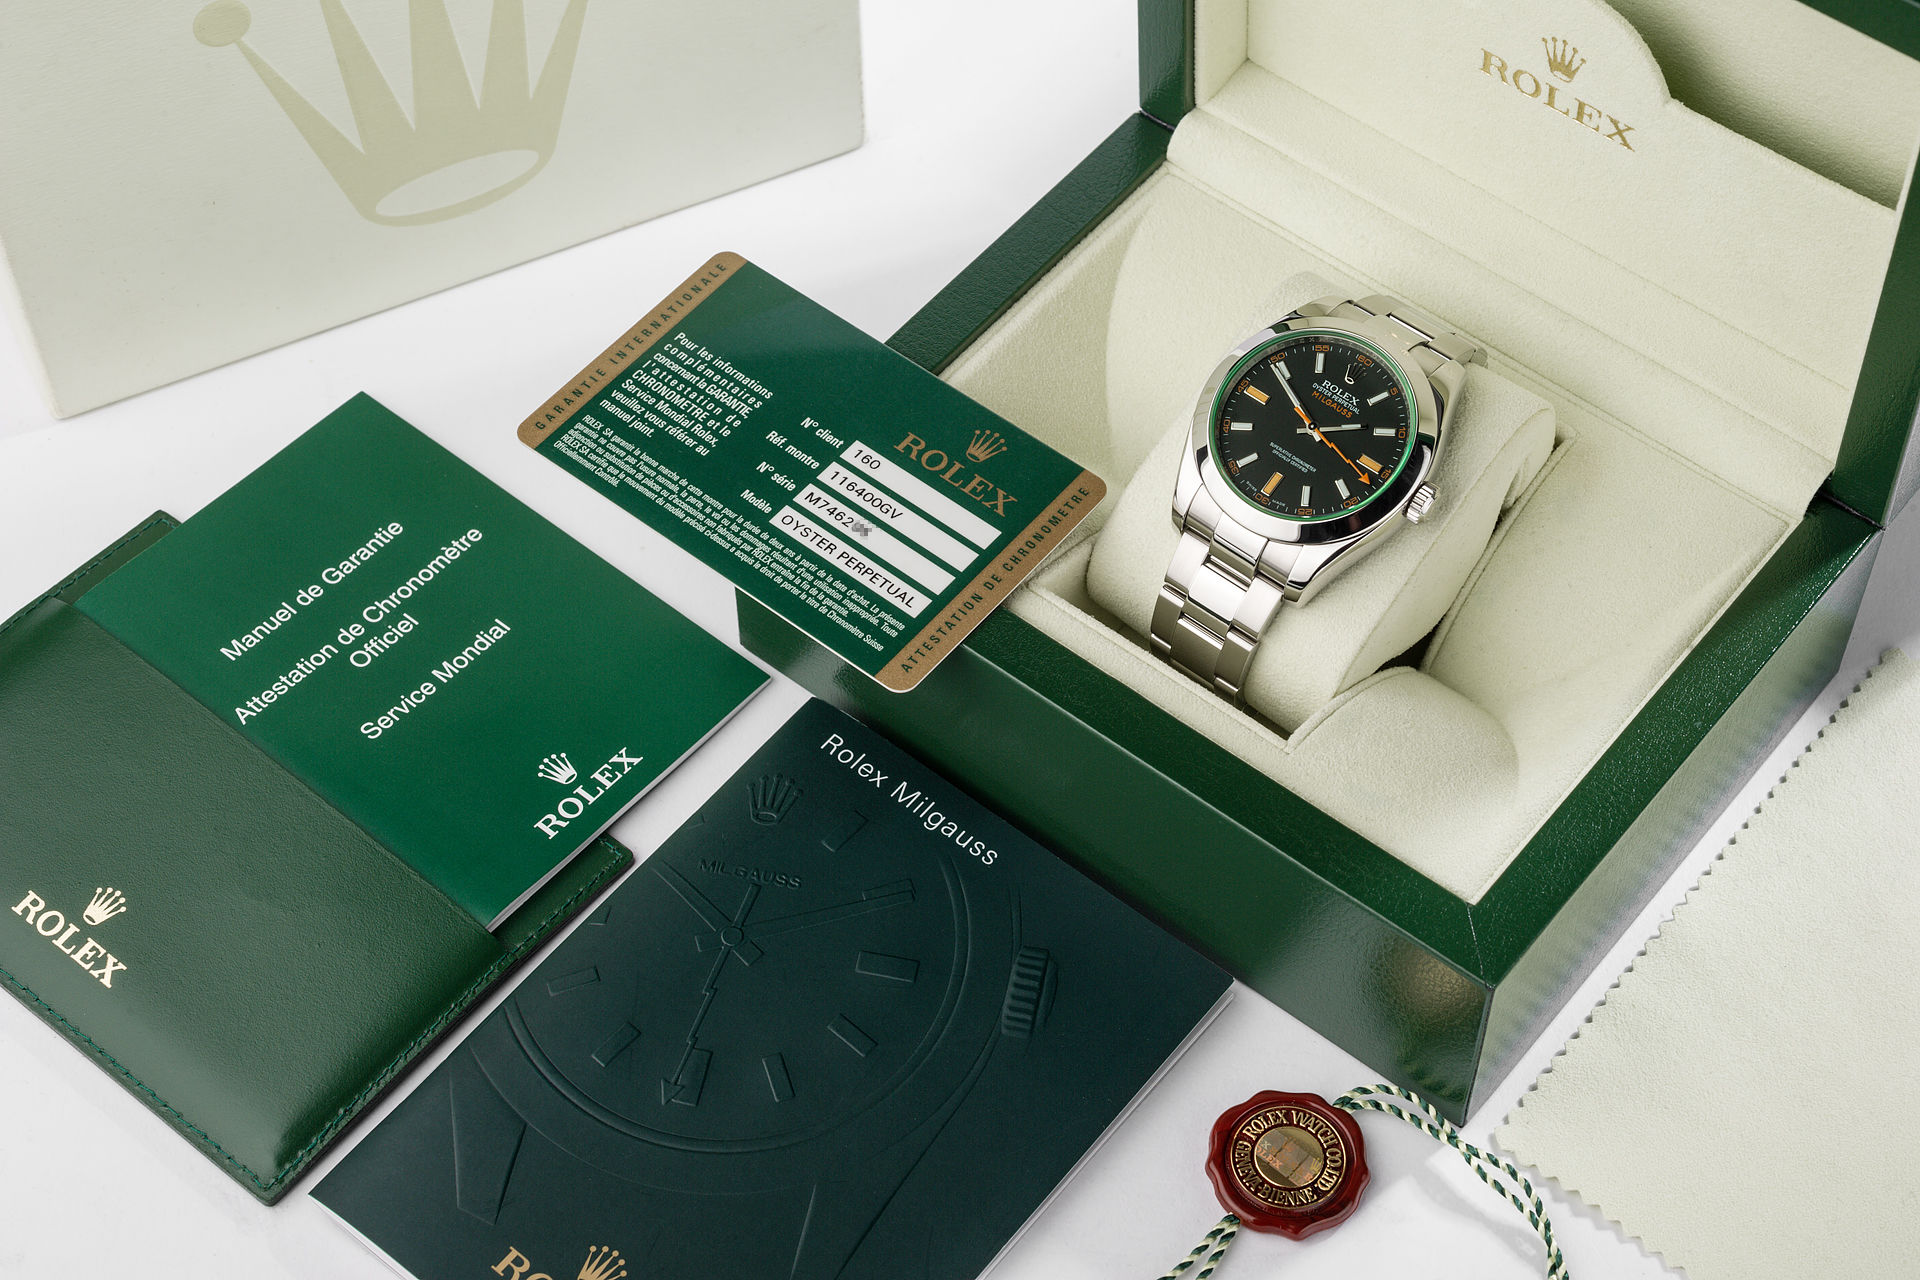 ref 116400GV | Box and Papers | Rolex Milgauss